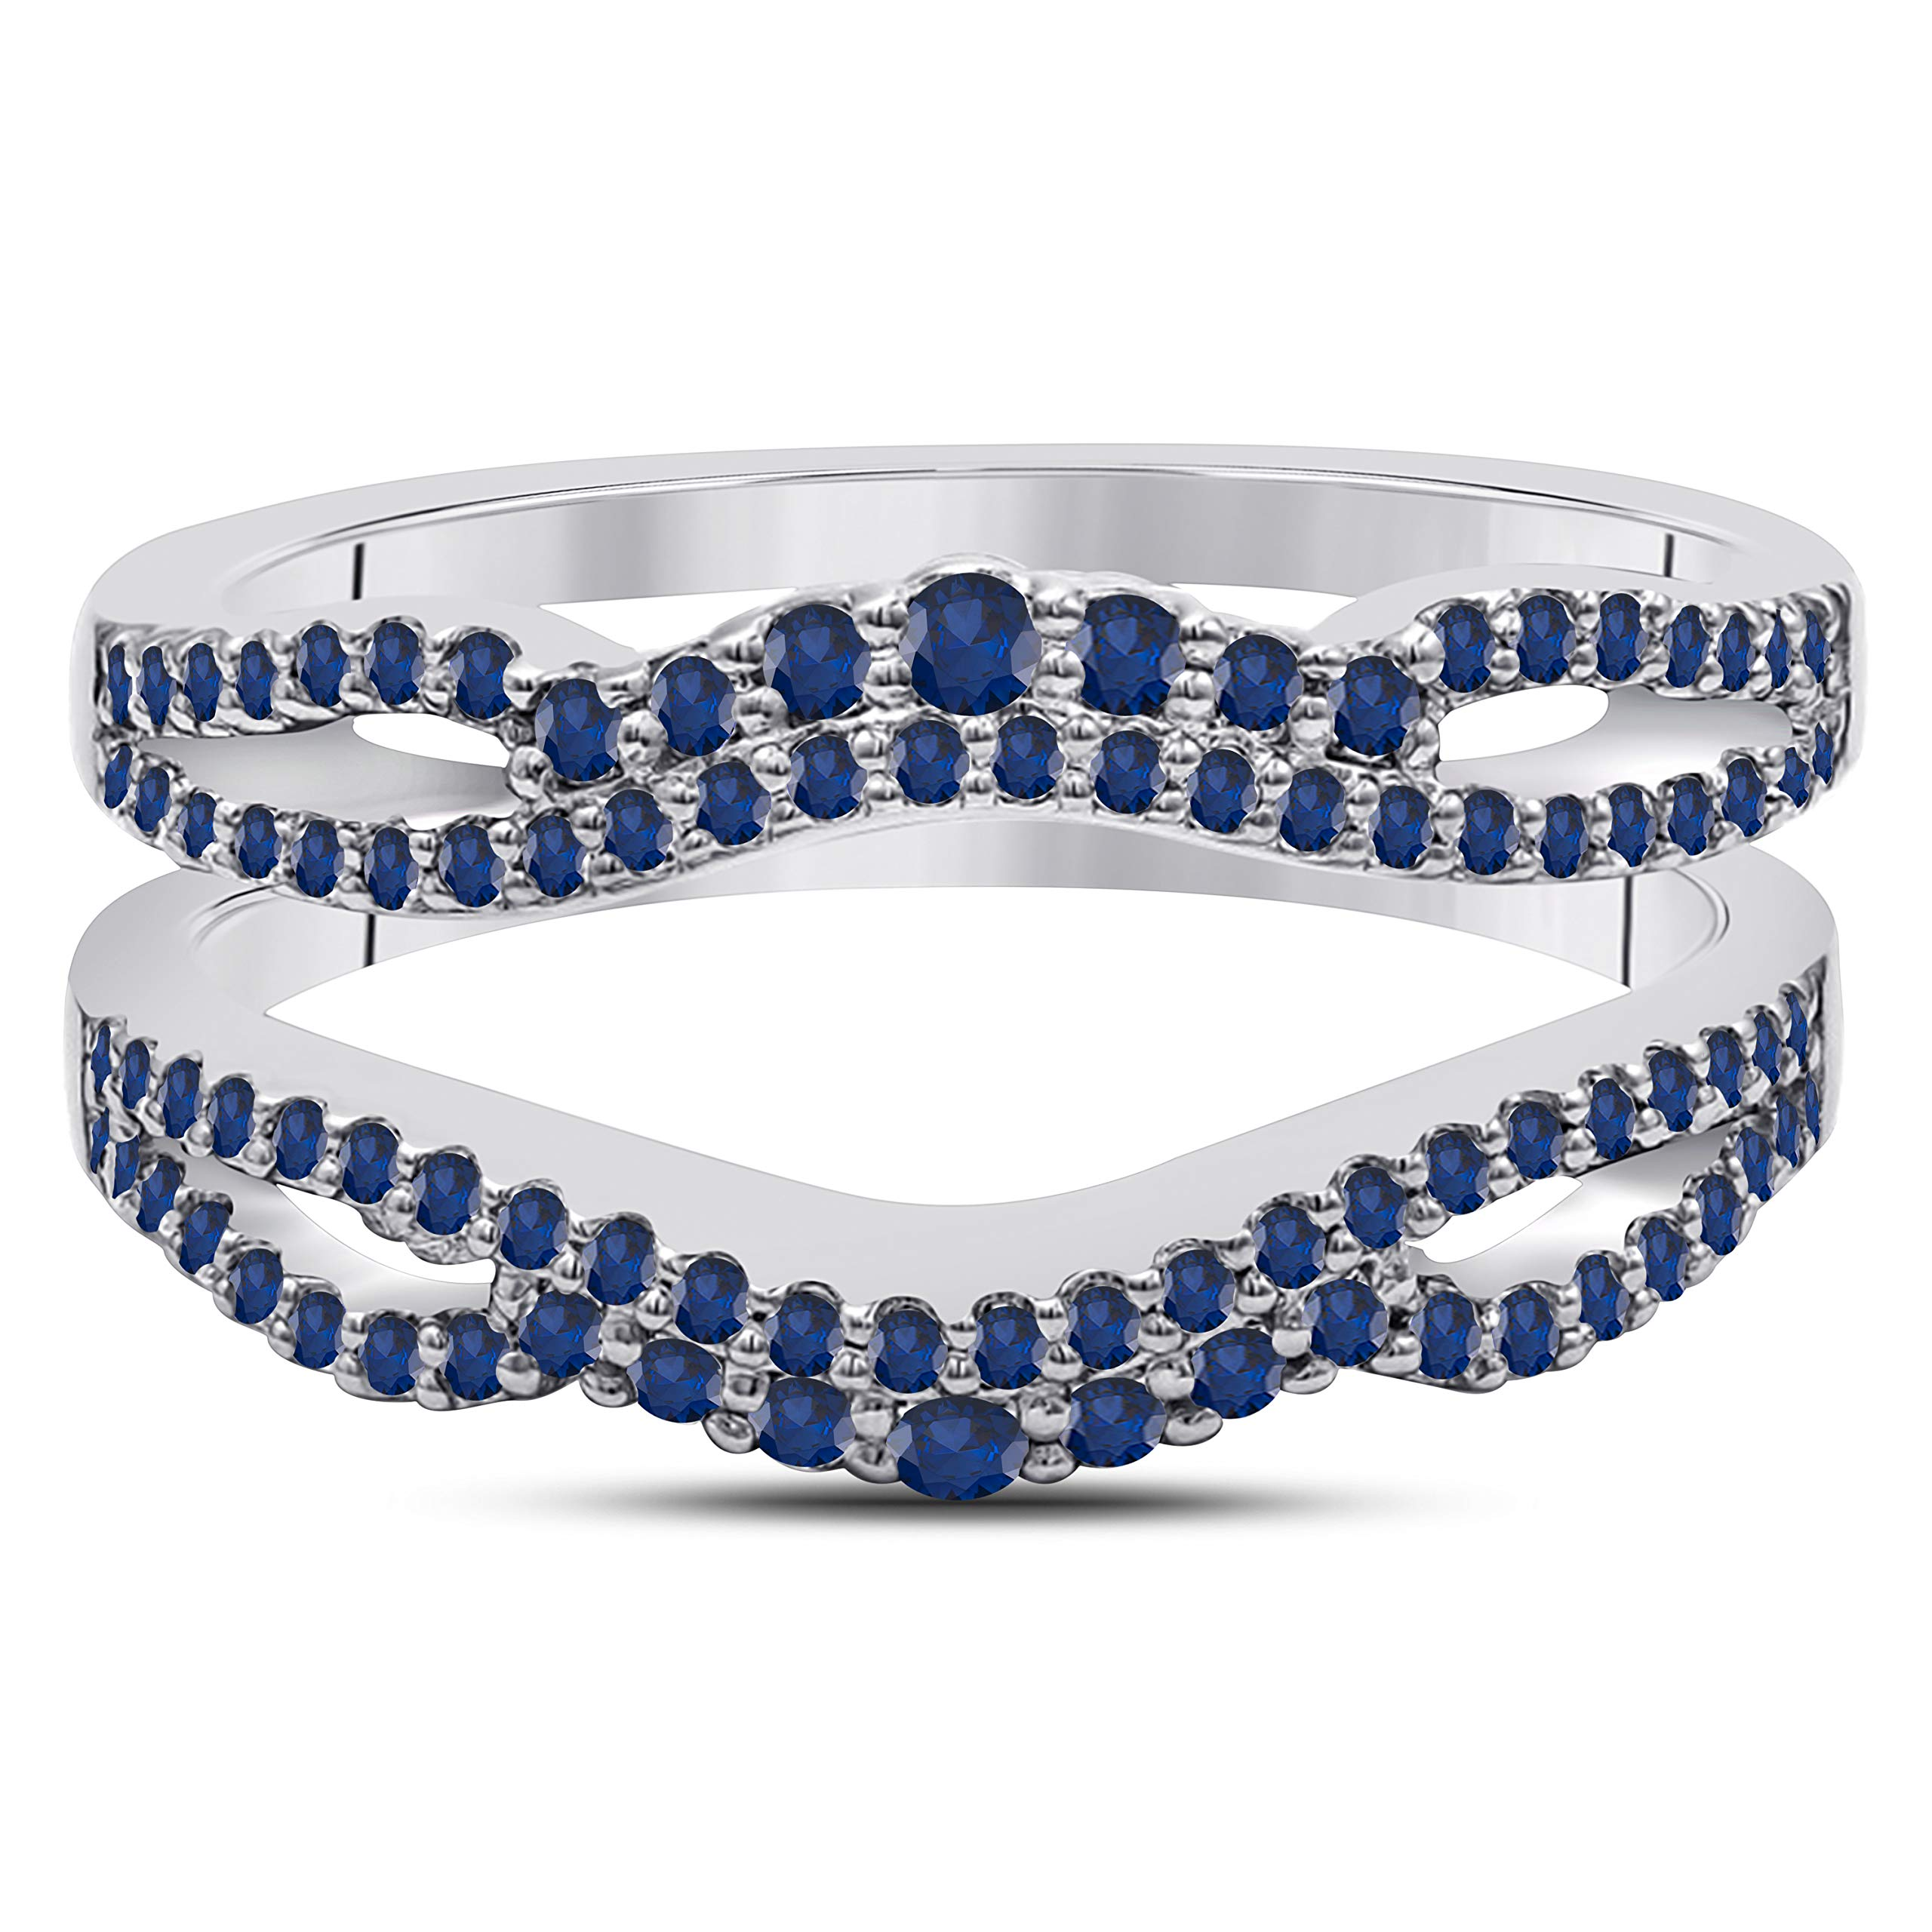 DreamJewels 14k White Gold Plated Alloy Double Infinity Engagement Wedding Enhancer Ring Guard with CZ Blue Sapphire (0.50 ct. tw.)